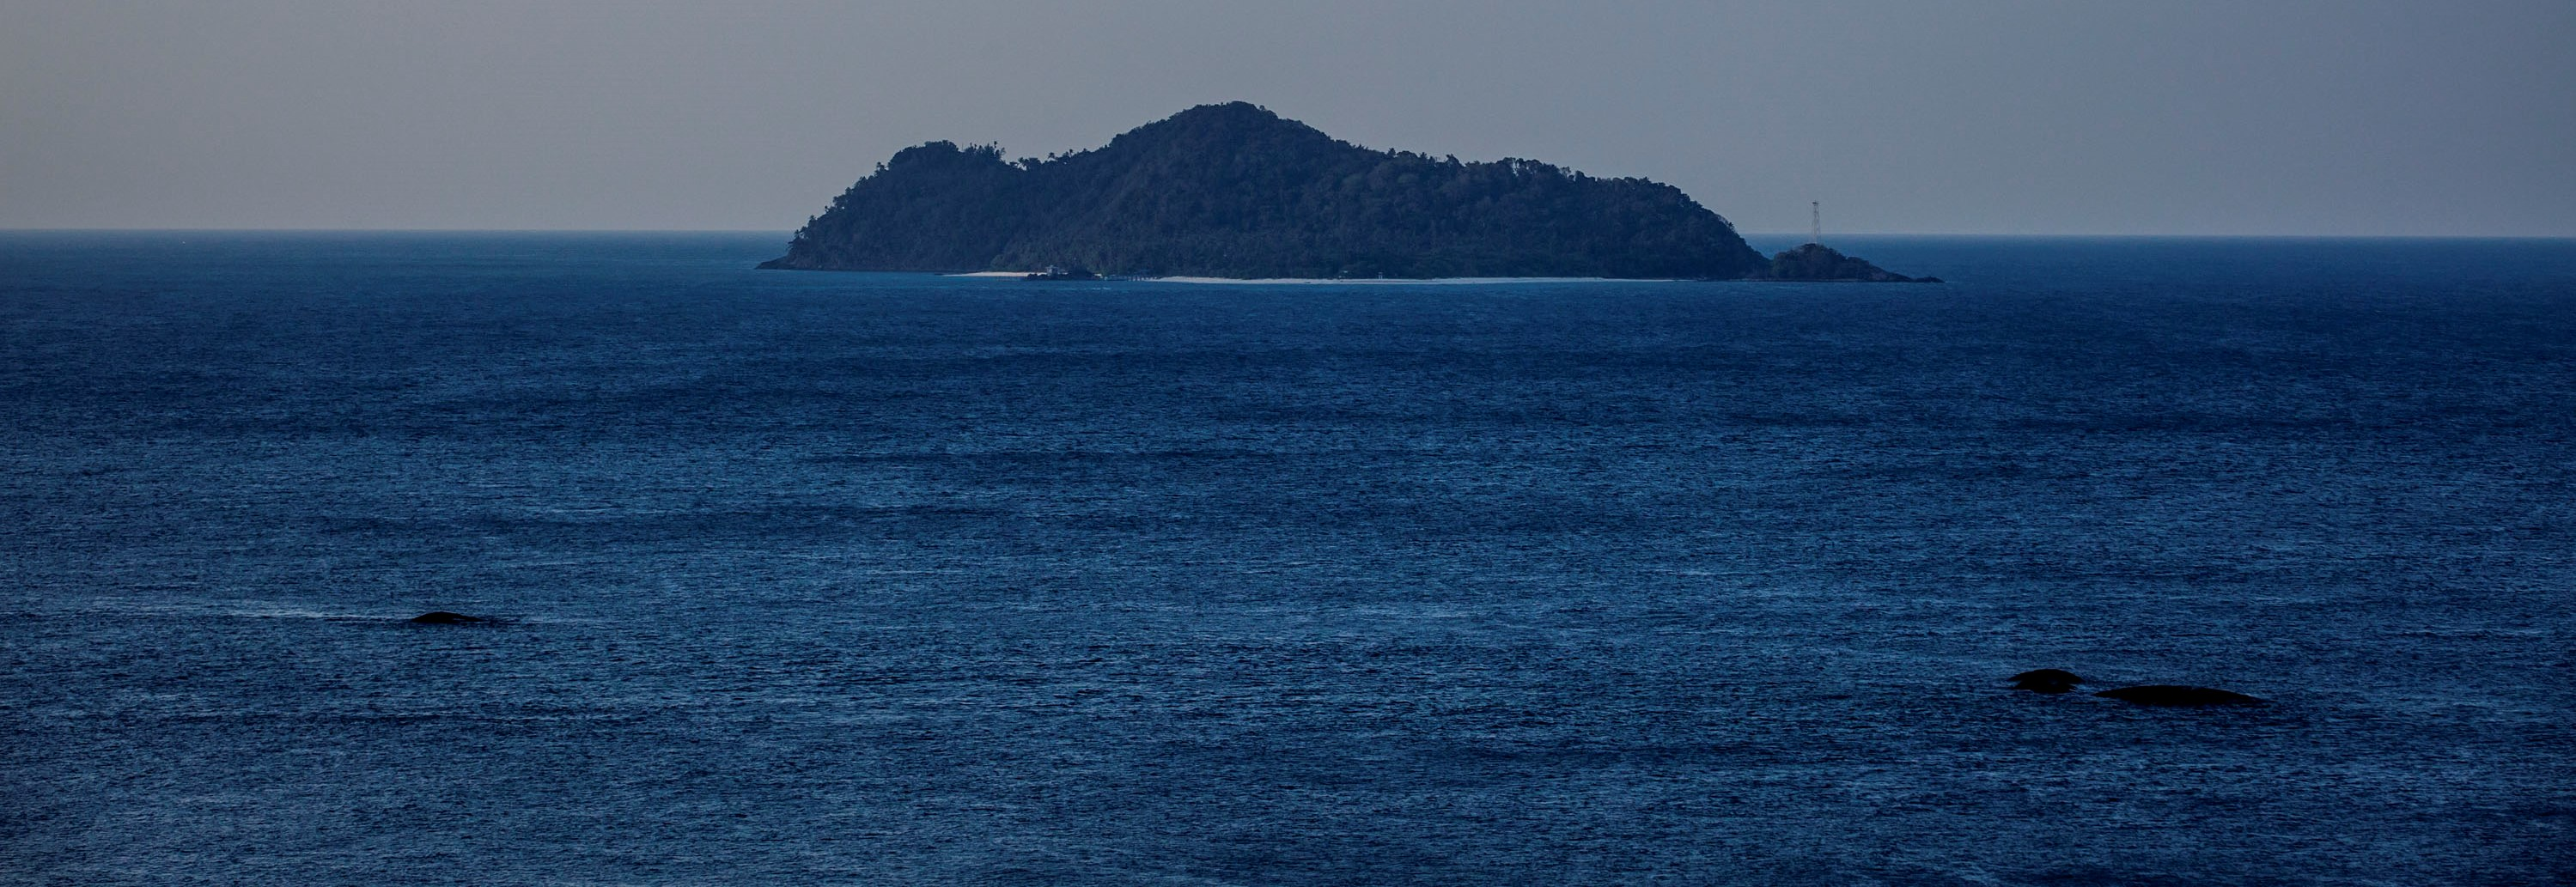 An outer island of the Natuna Islands, August 2016 (Photo: Getty Images/Ulet Ifansasti)